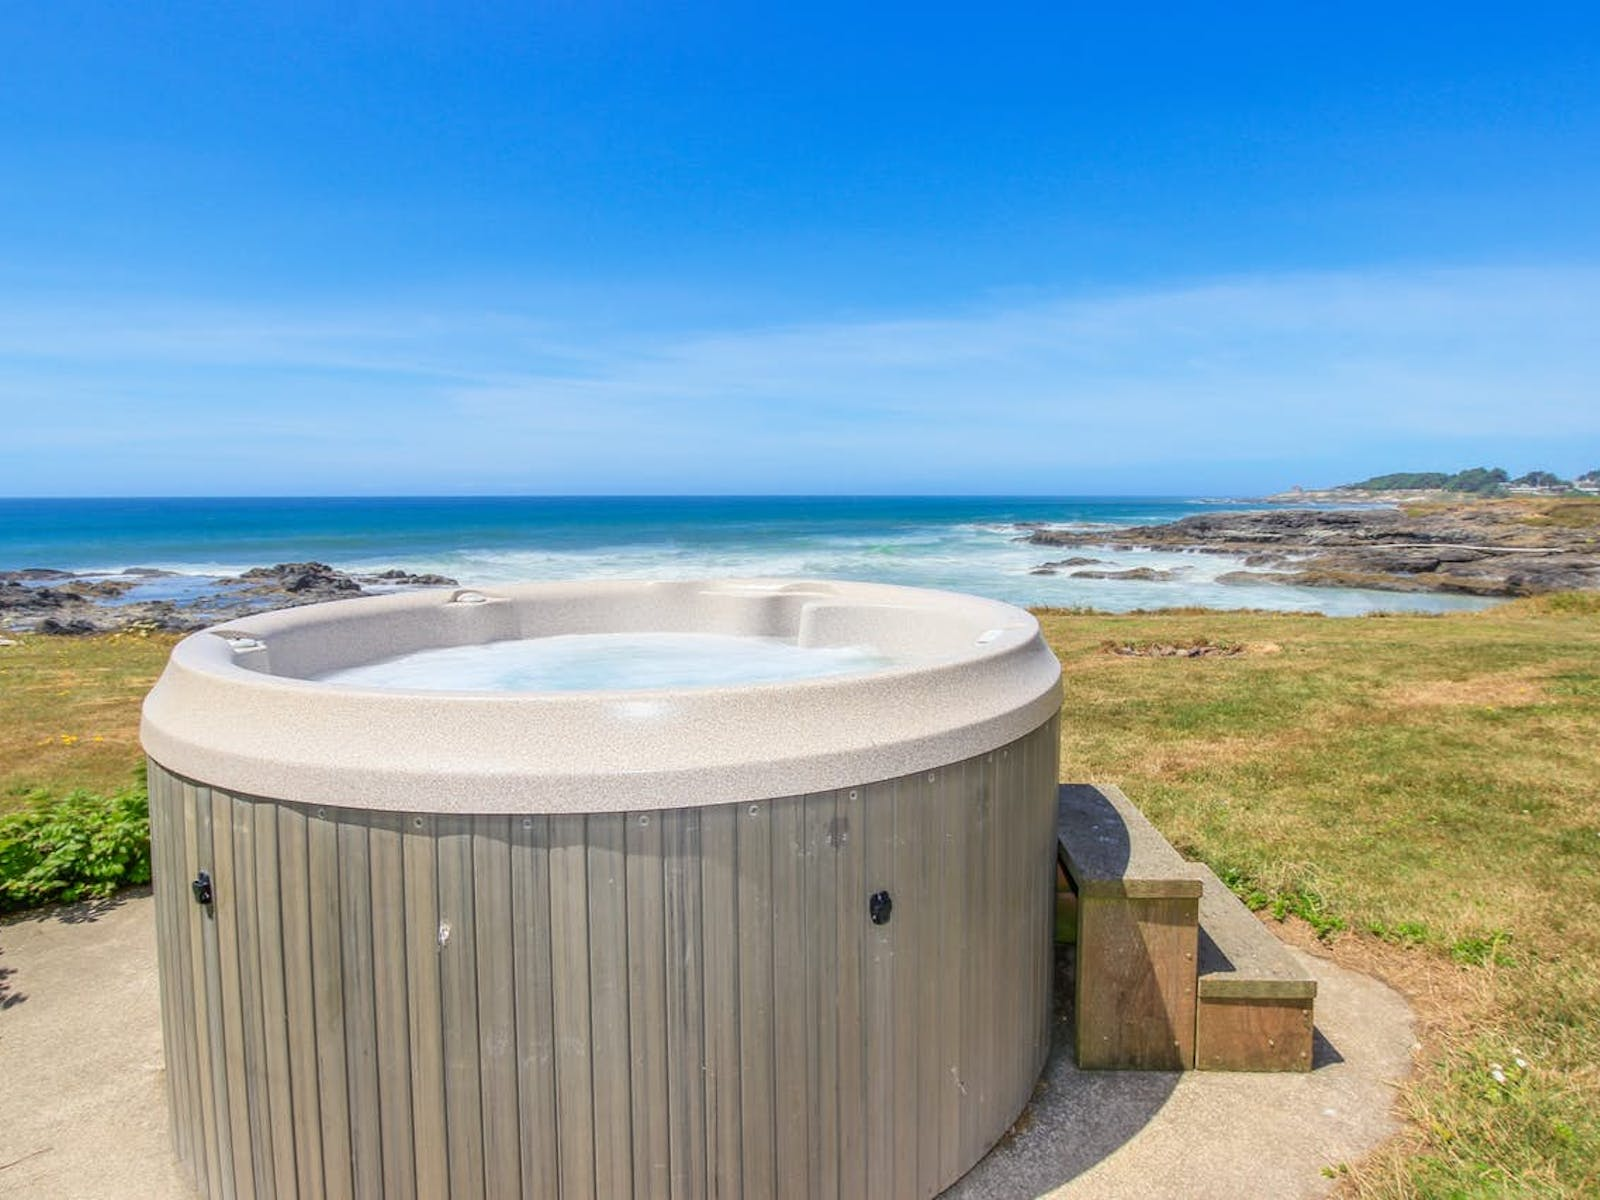 Hot tub overlooking ocean on the Oregon coast